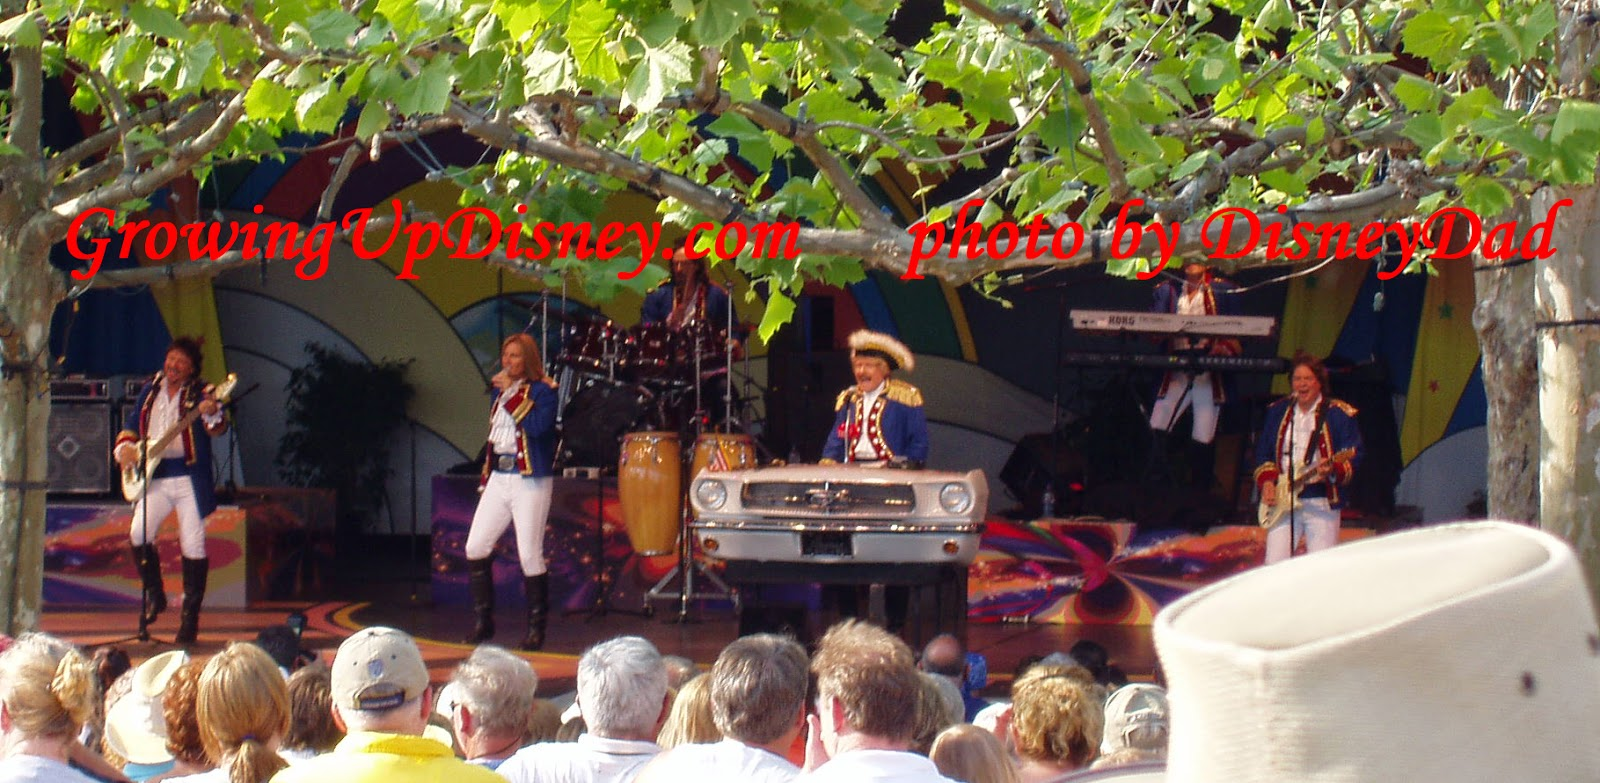 Paul Revere and the Raiders at EPCOT